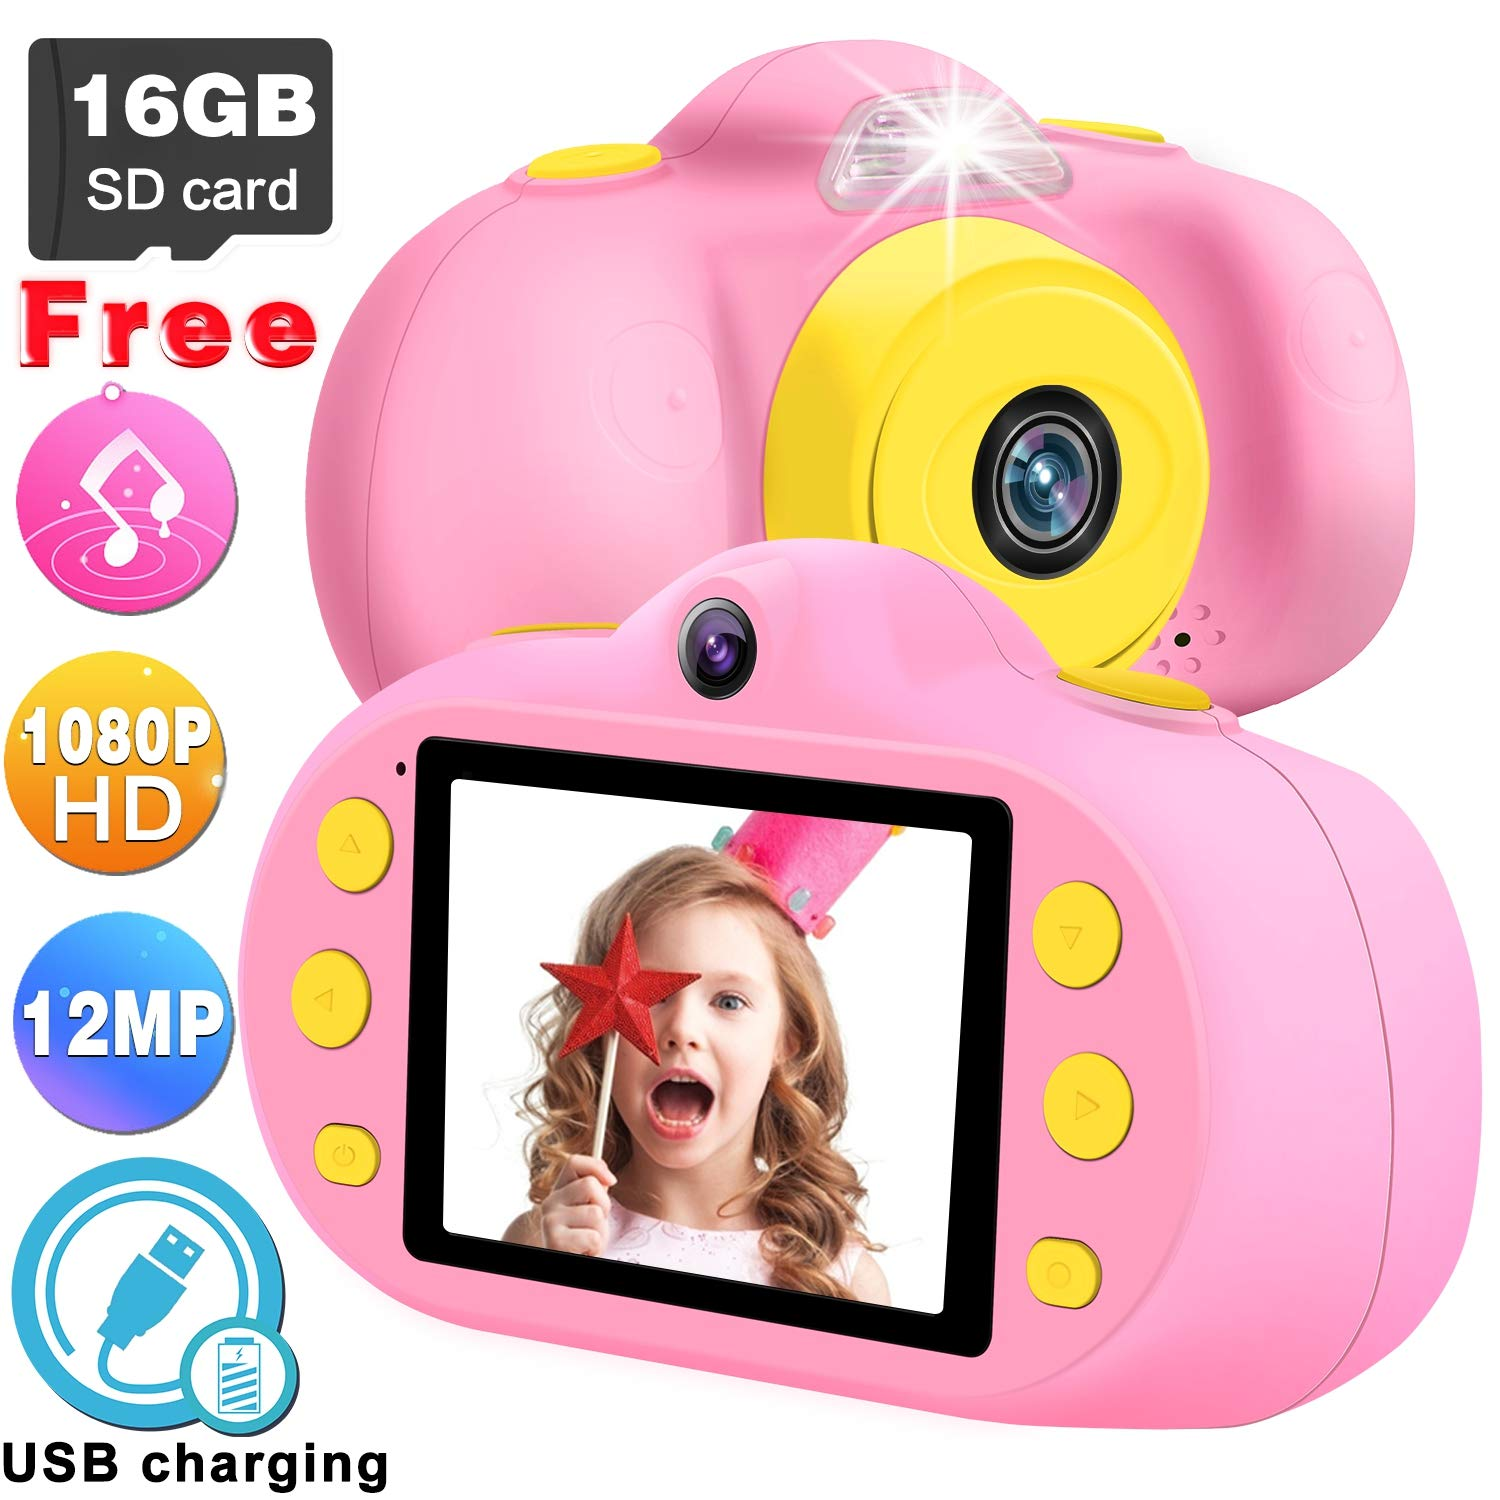 GBD [NEW] Kids Camera Toys for Boys Girls,12MP HD 1080P Selfie Video Camera with MP3 Player Games DUAL Lens, 2.4'' Digital Camcorder Recorder Back to School Birthday Gift,(Free 16GB Memory Card) (Pink) by GBD (Image #8)